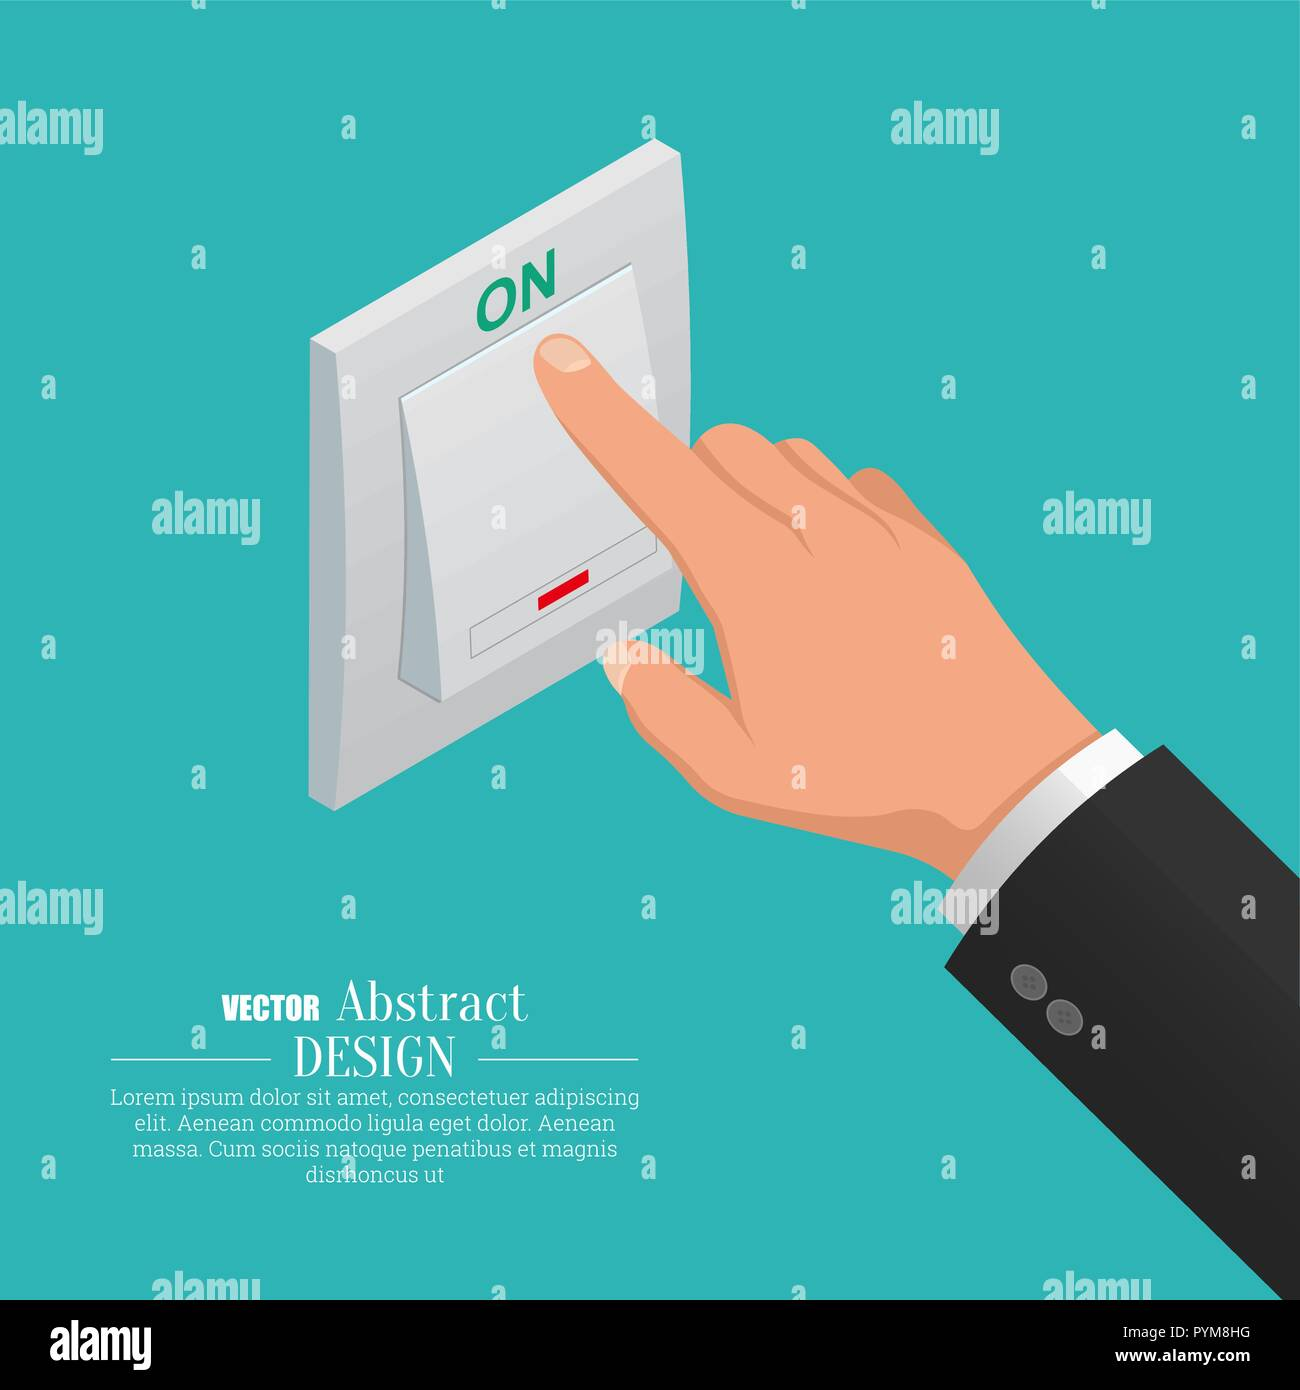 The hand turns on light switch. A vector isometric illustration for a poster, advertizing. - Stock Vector